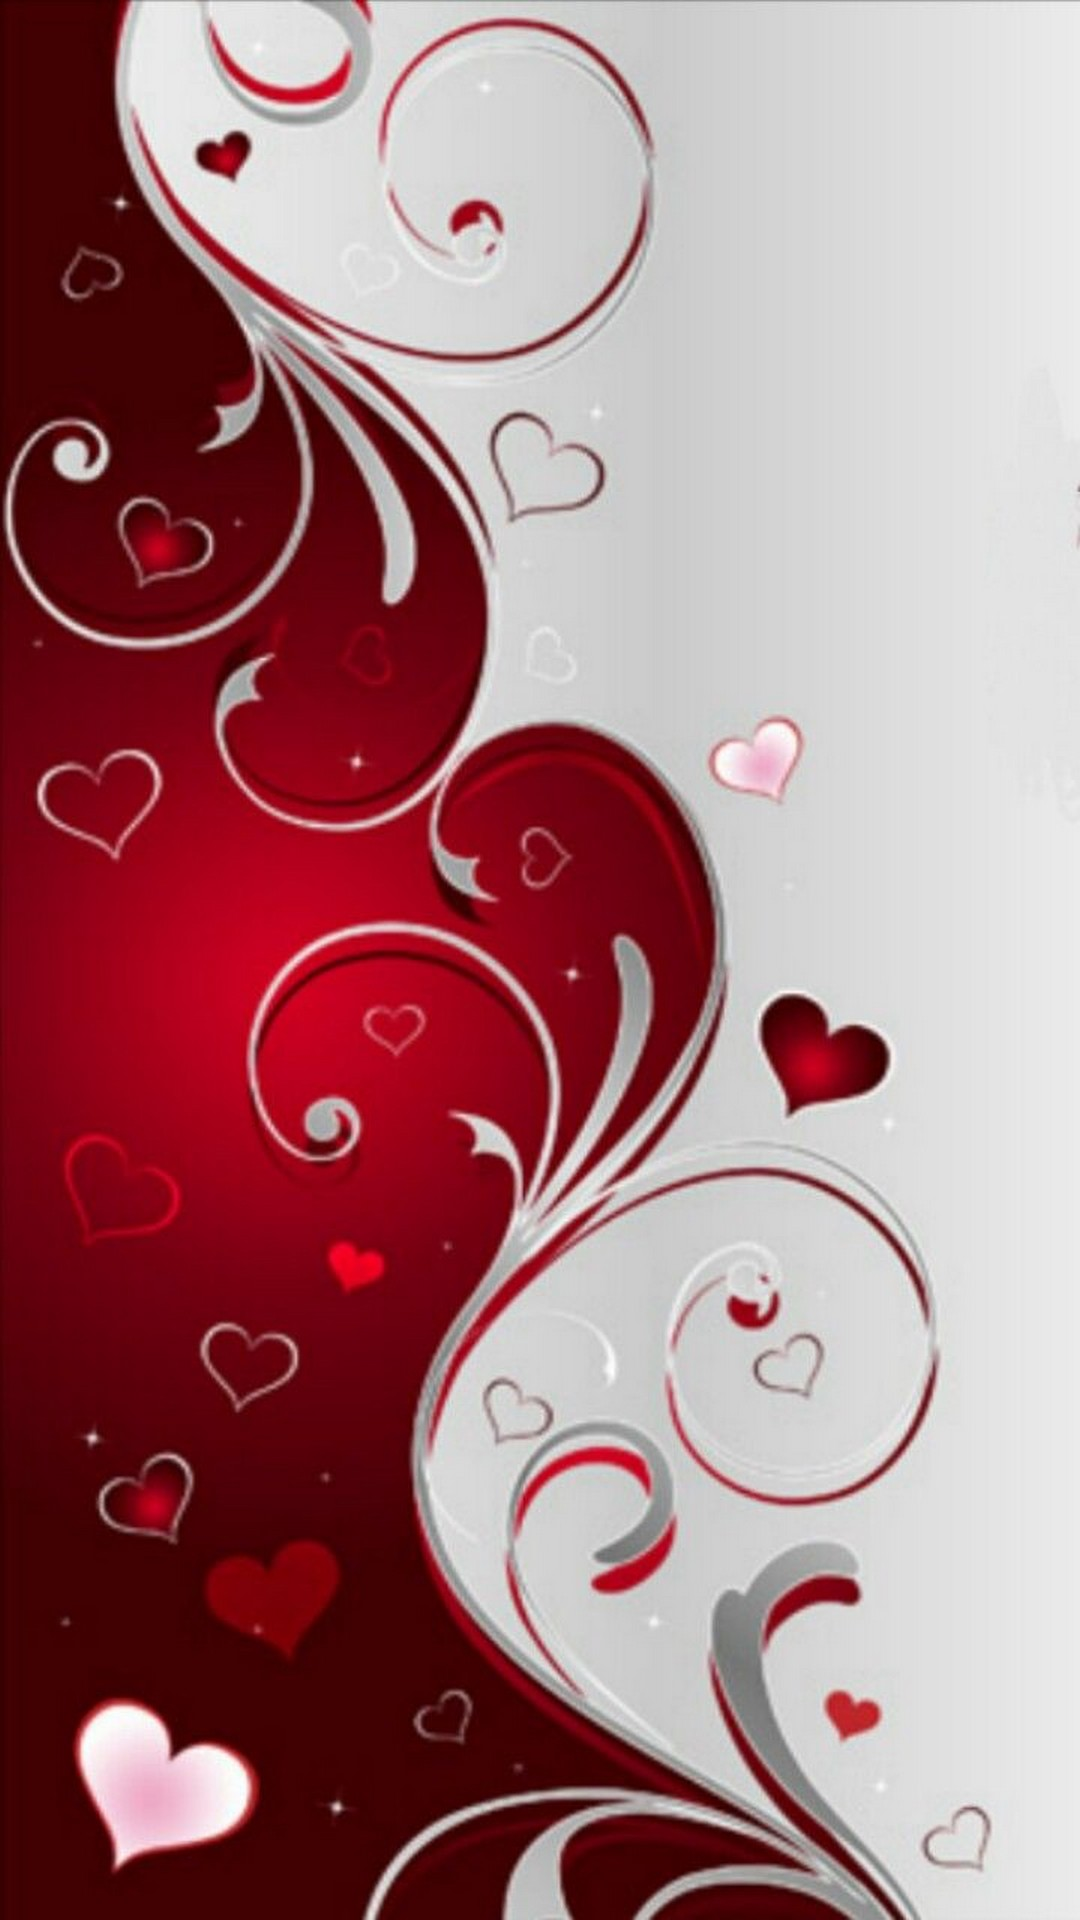 Android Wallpaper Valentines Day Cards   2020 Android Wallpapers 1080x1920